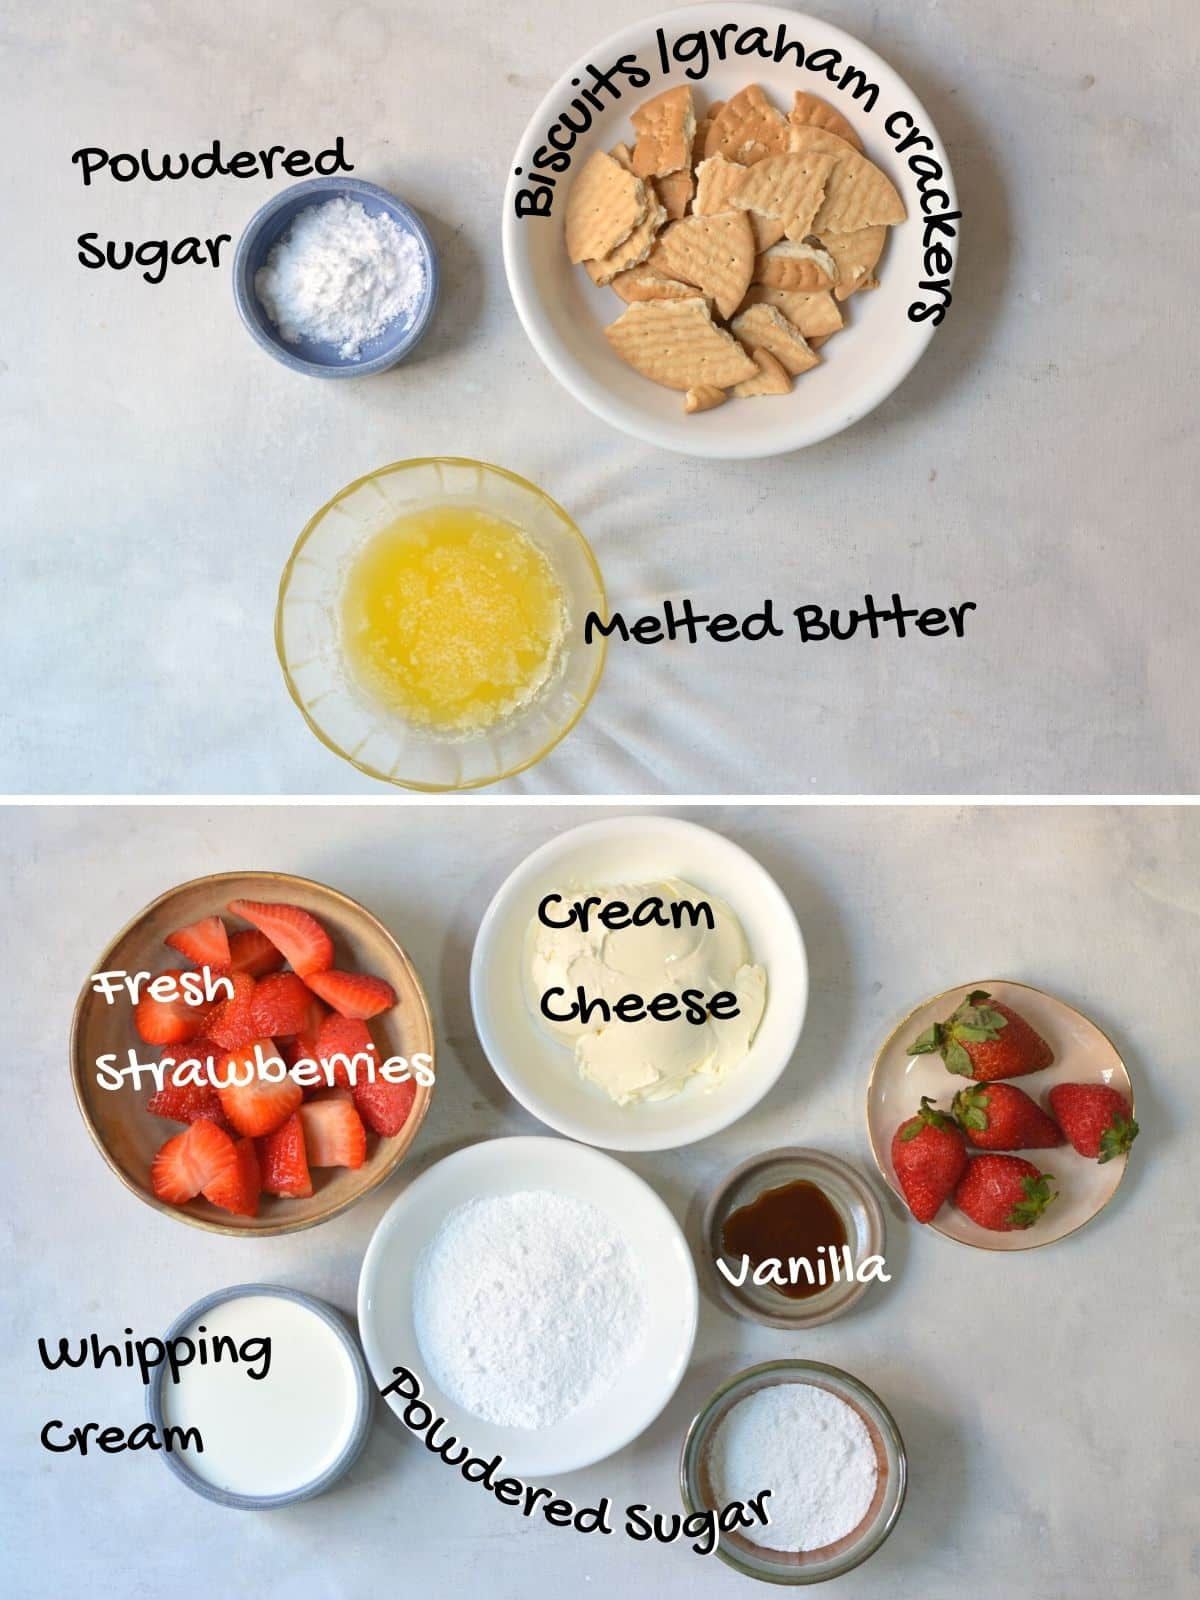 No bake strawberry cheesecake ingredients on a countertop.